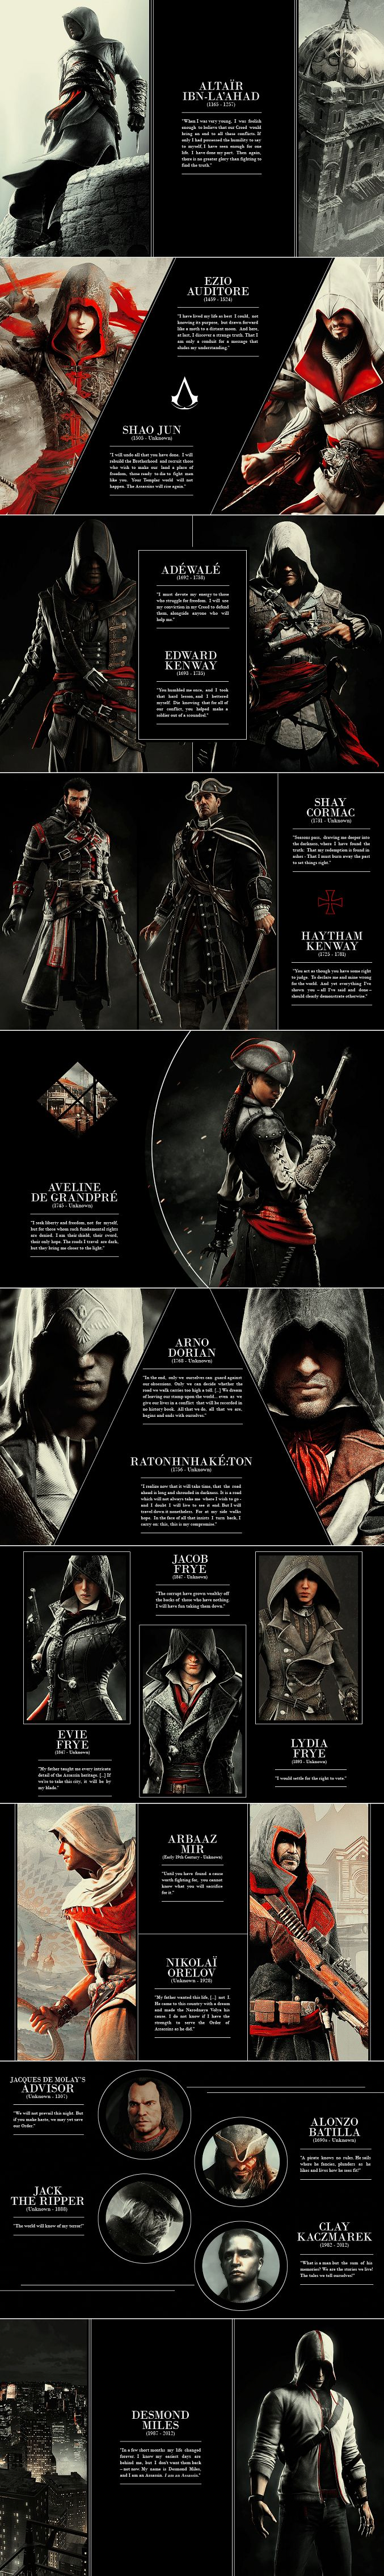 "Assassin's Creed + Playable Characters: ""My story is one of many thousands and the world will not suffer if it ends too soon."""